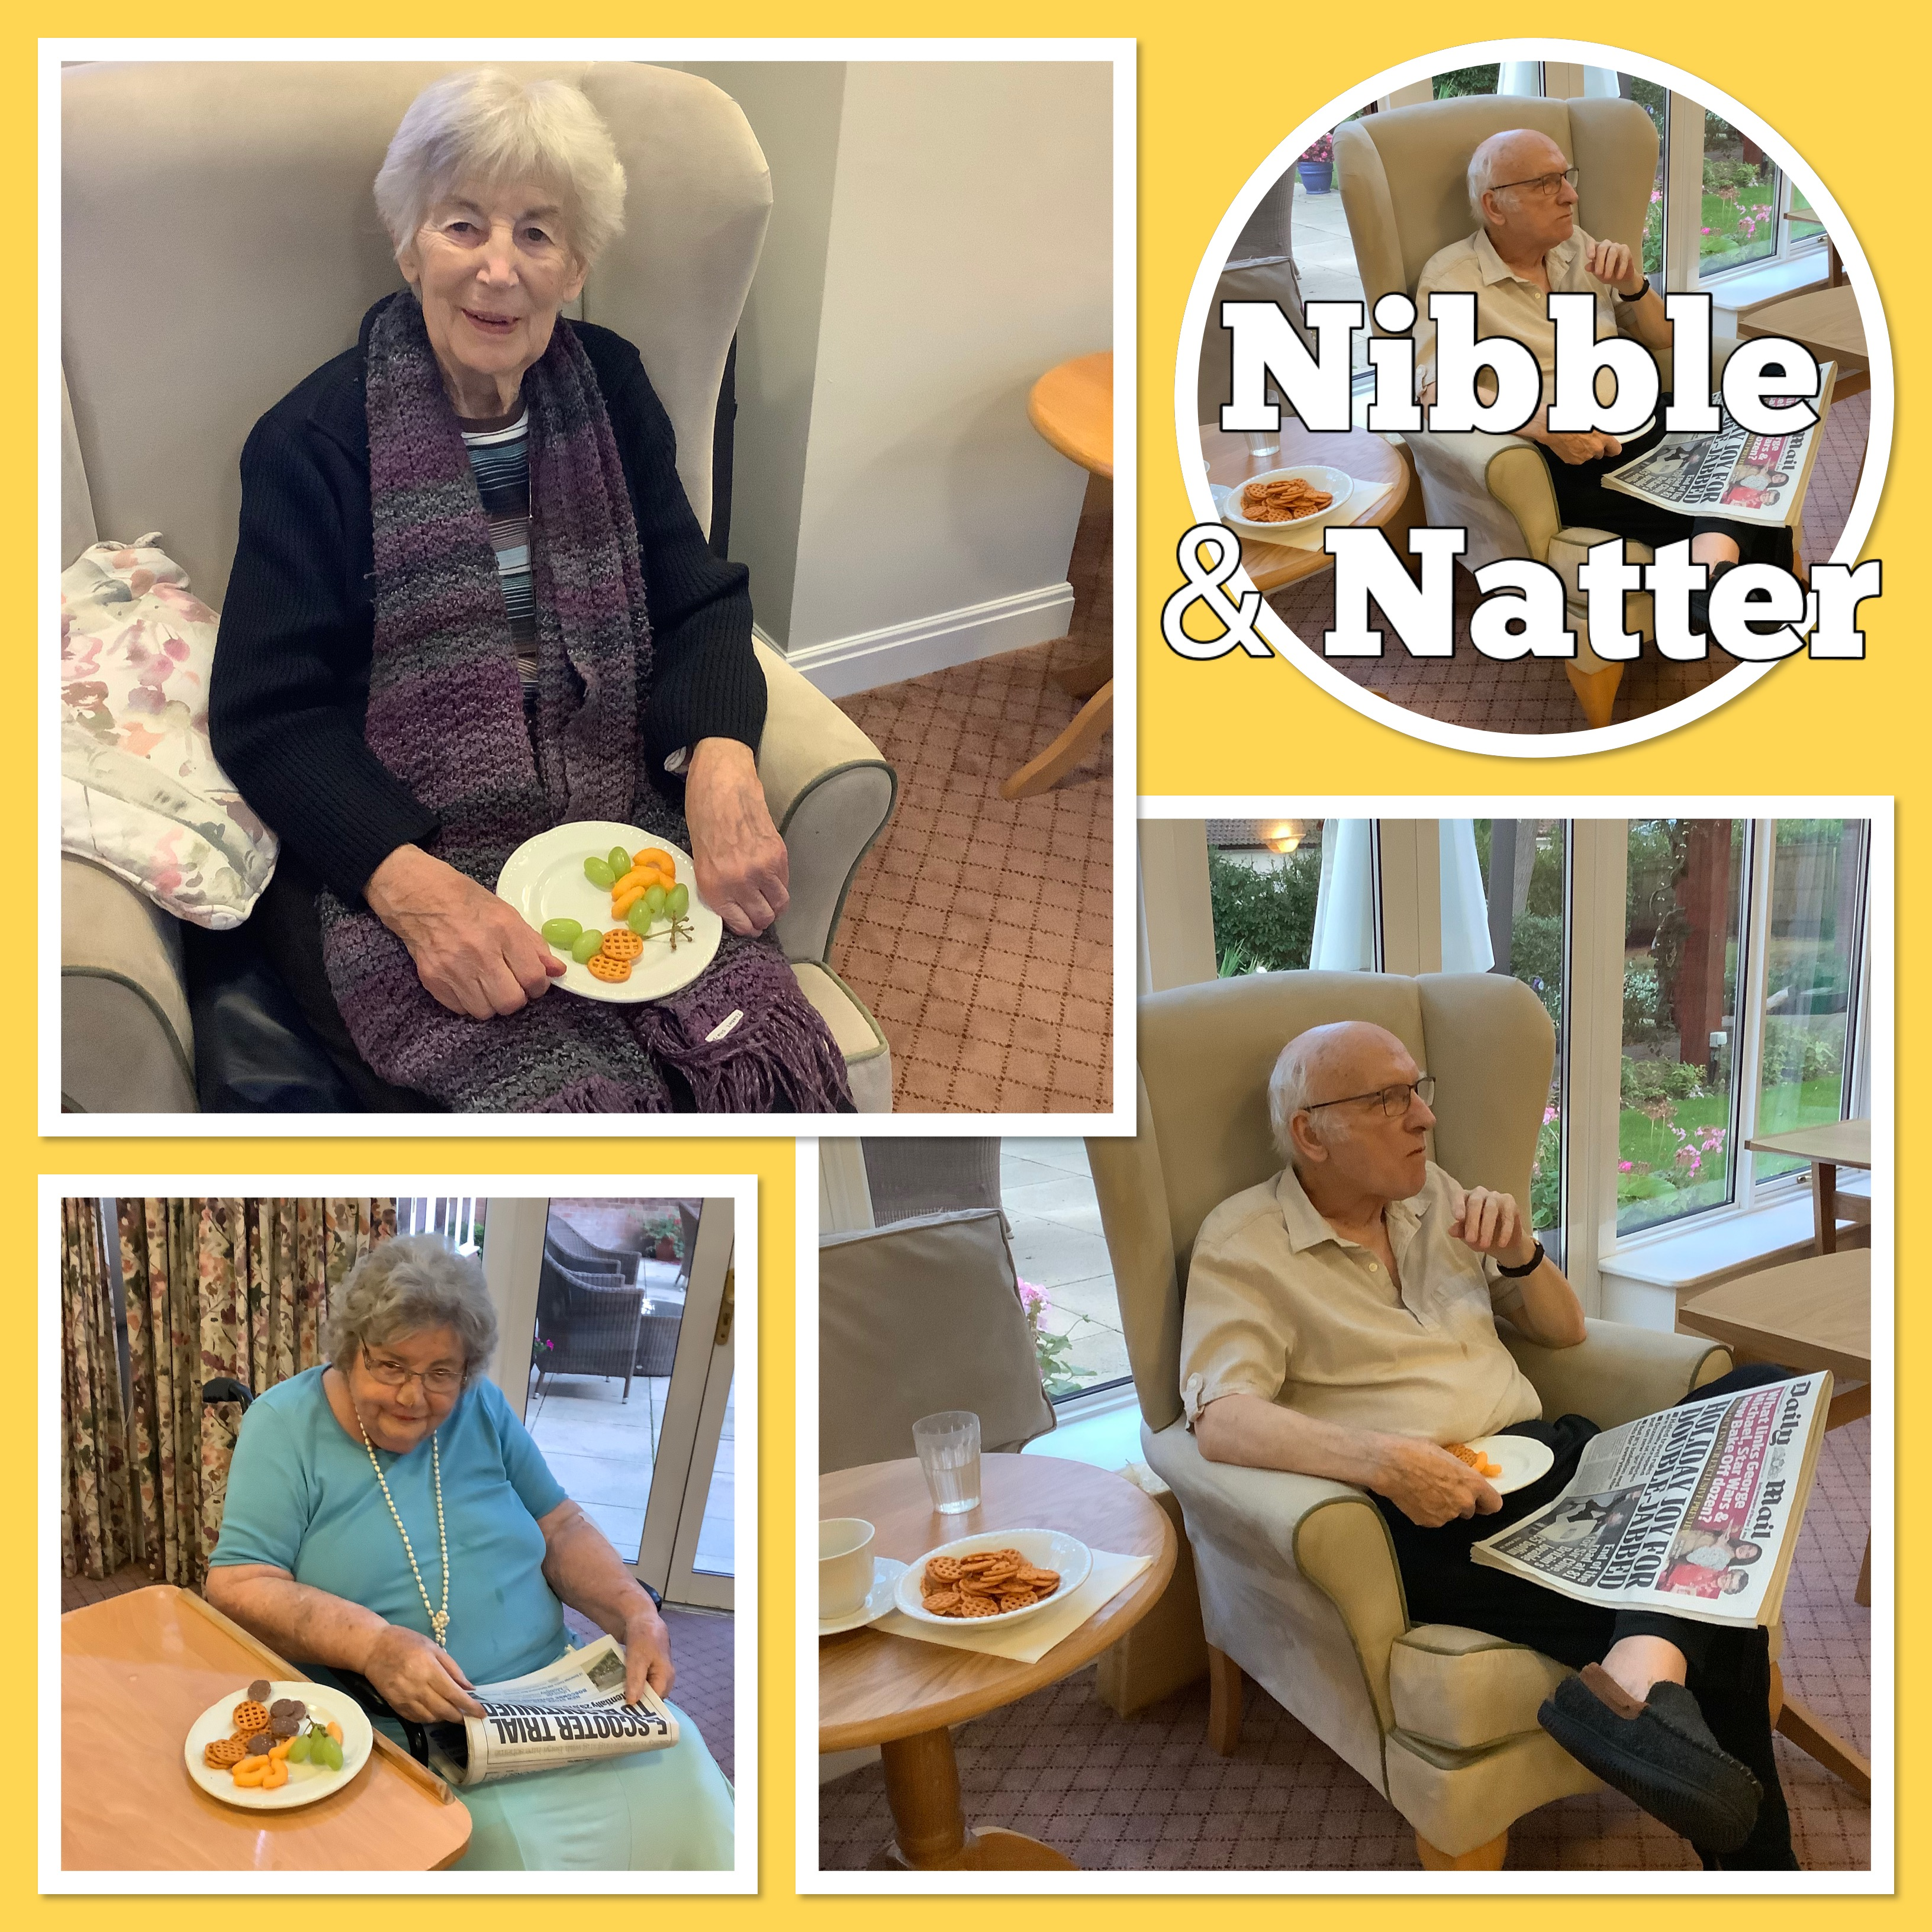 Nibble and Natter collage